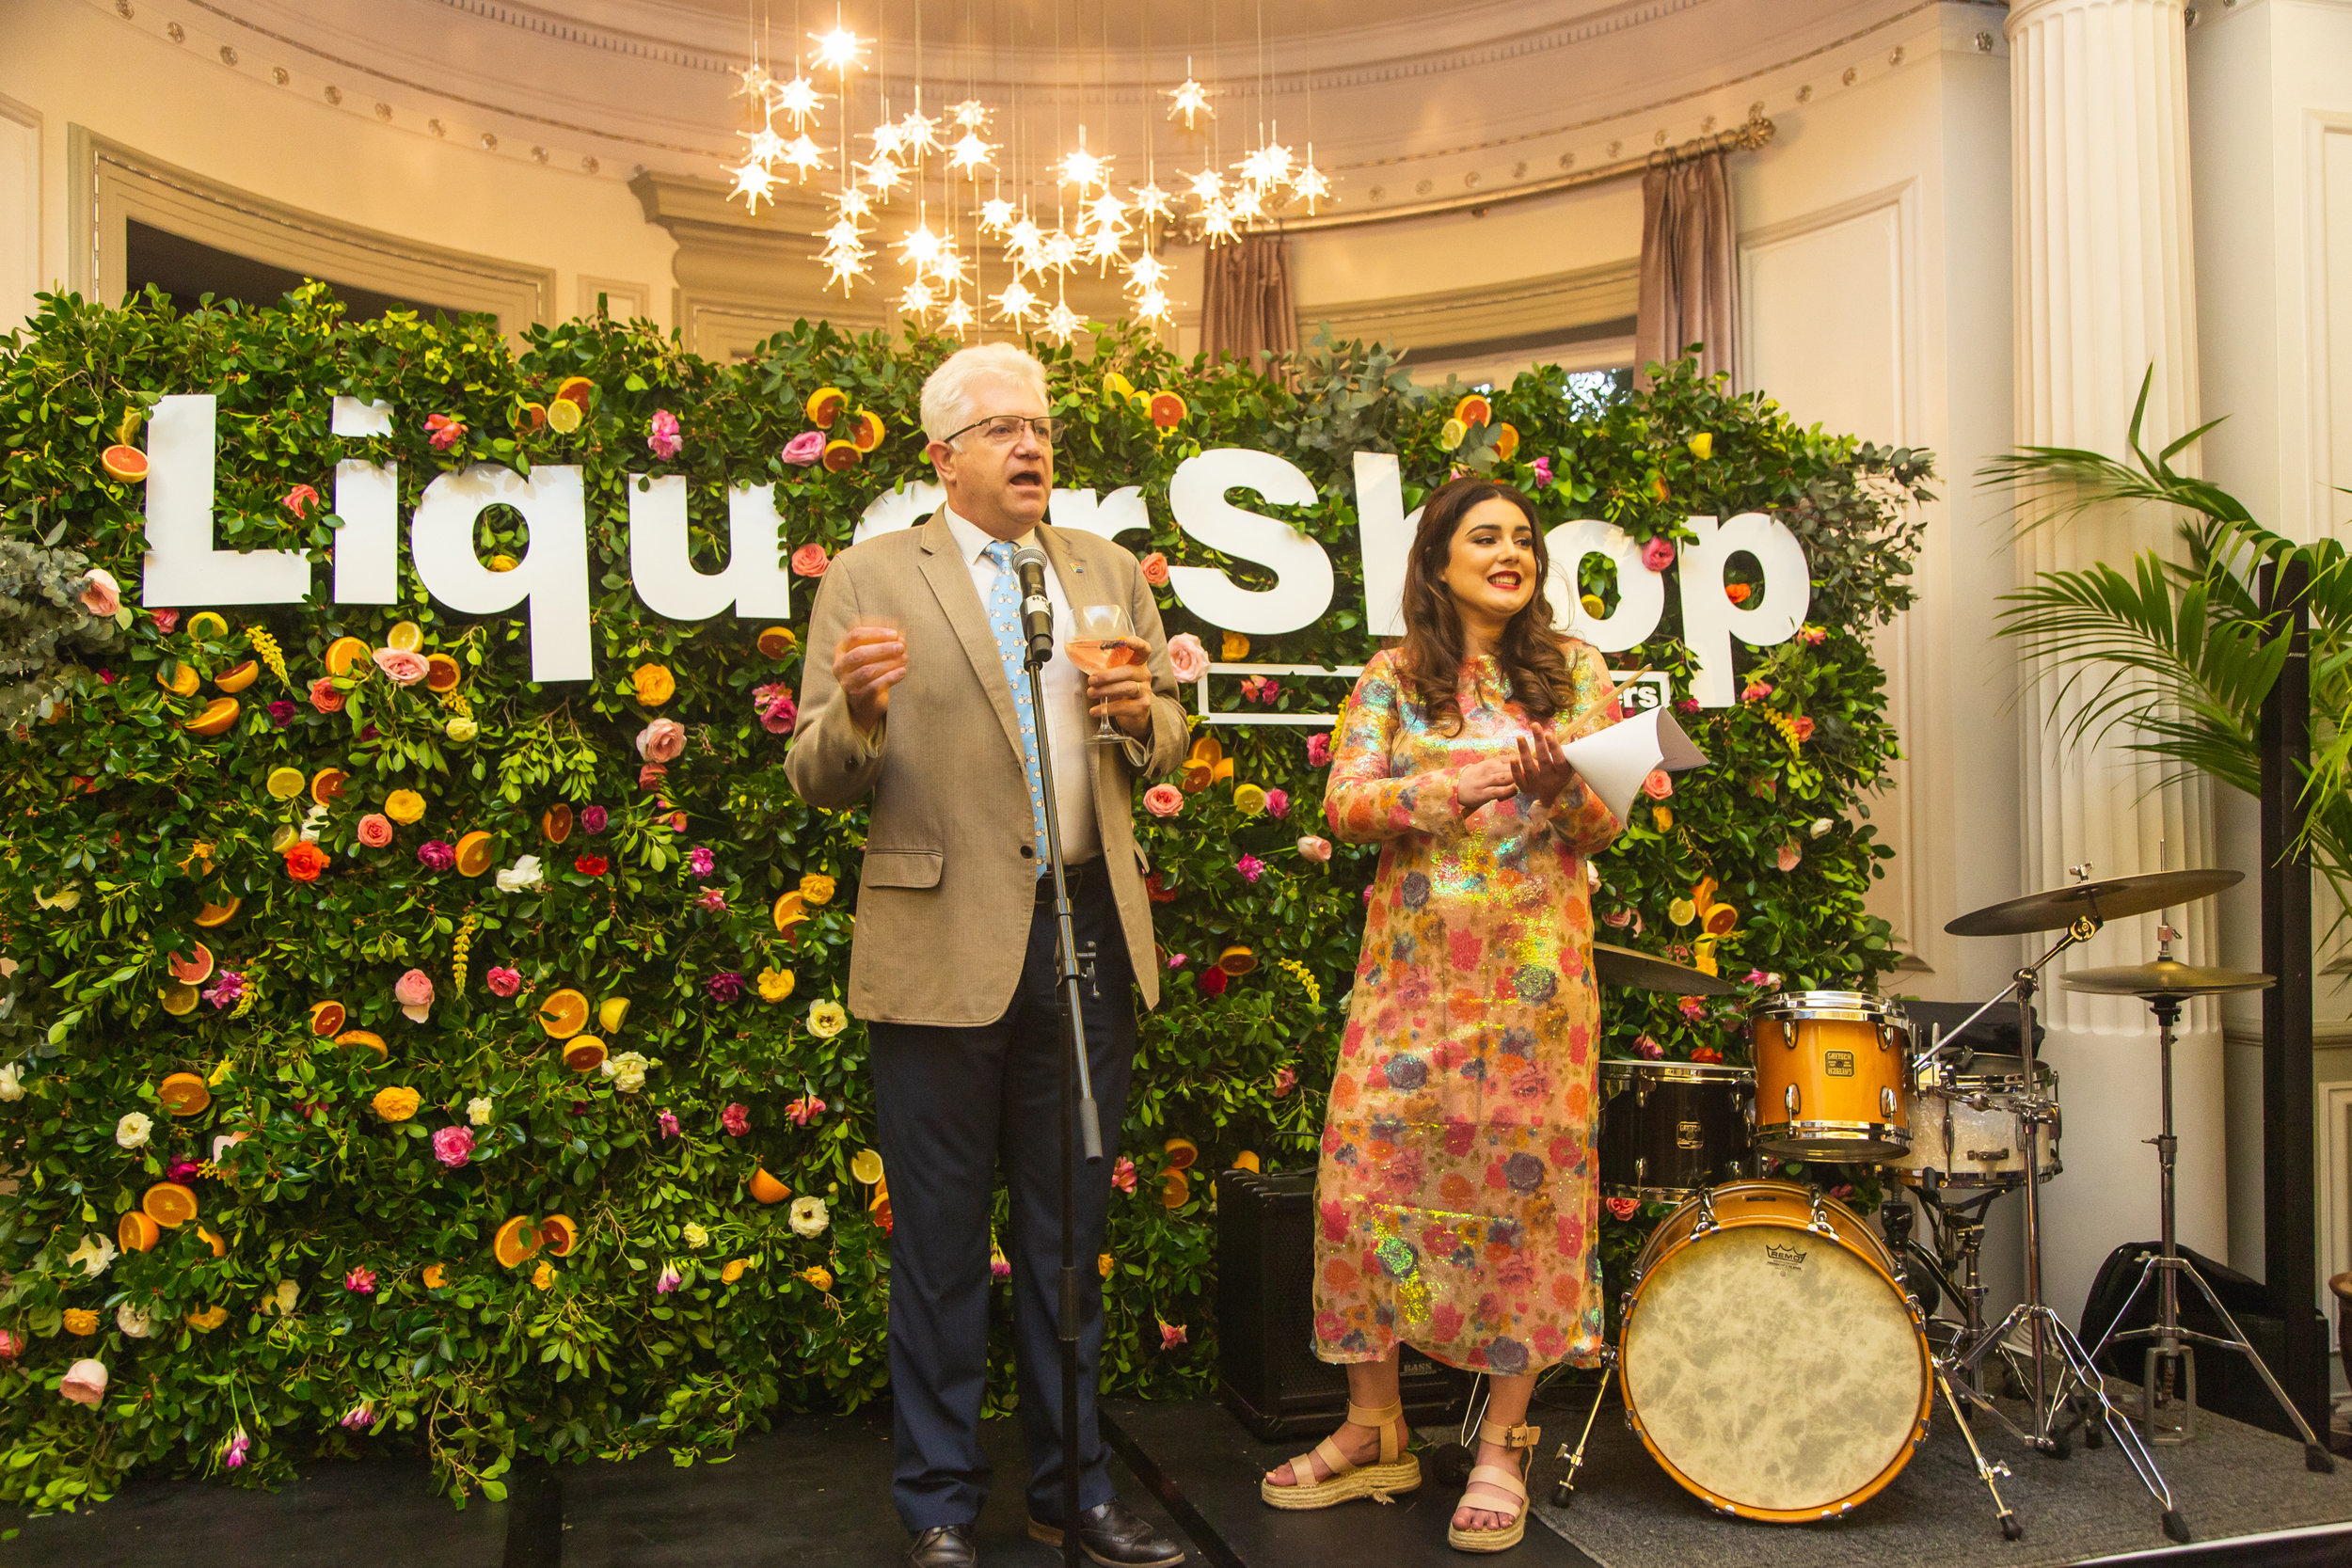 Co-hosting with the very warm, very fun Premier Alan Winde (Photo Credit: Tasmin Weir)